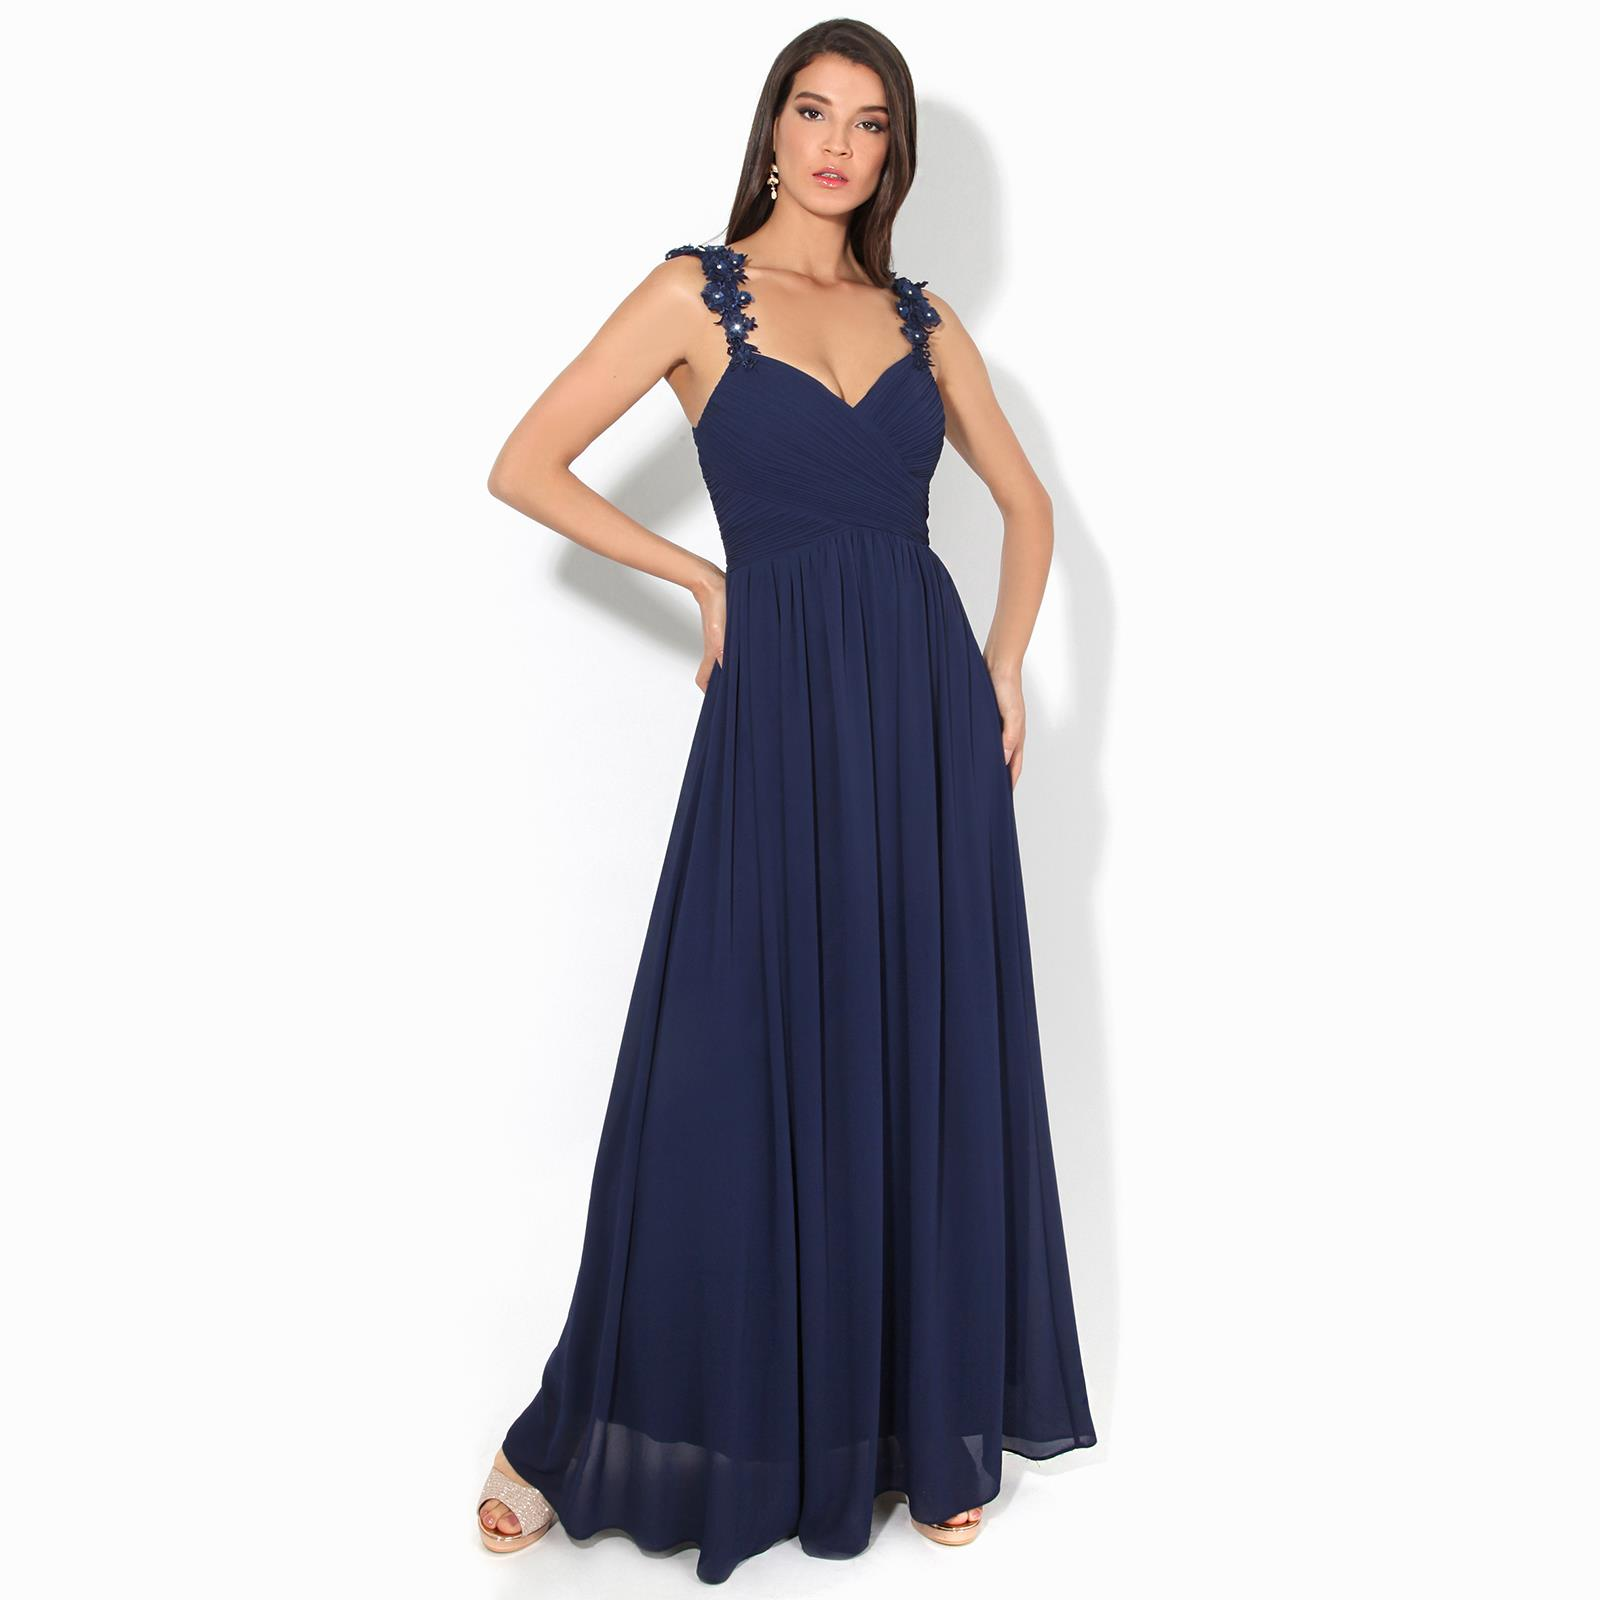 Women-Maxi-Dress-Ladies-Formal-Evening-Party-Cocktail-Lace-Chiffon-Gown-Party thumbnail 21